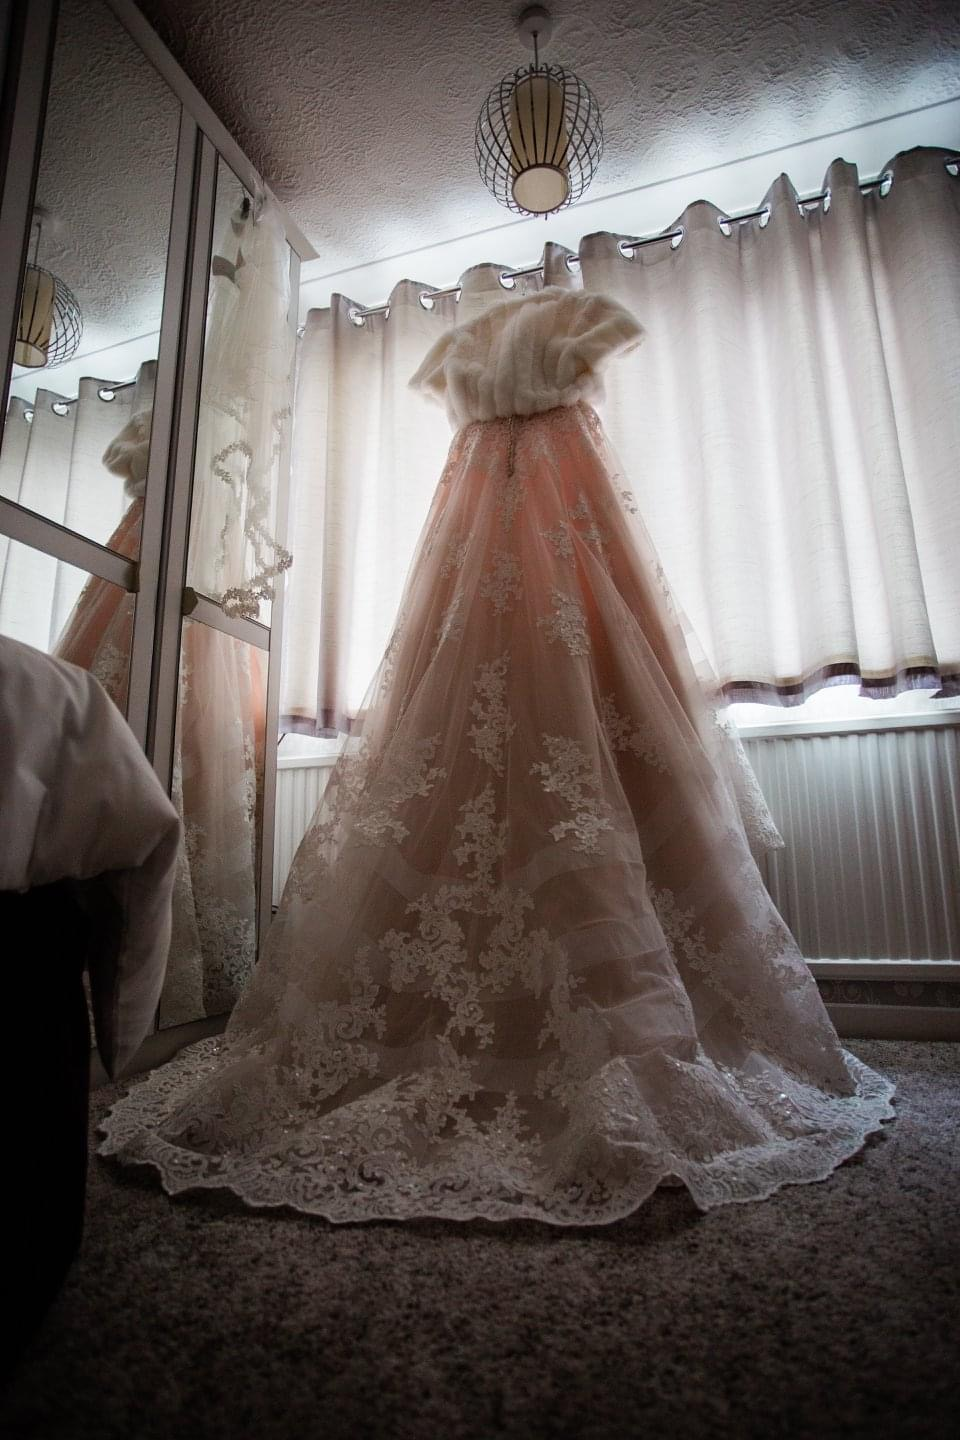 Lizzie Tomkinson's pink lace wedding dress hanging up